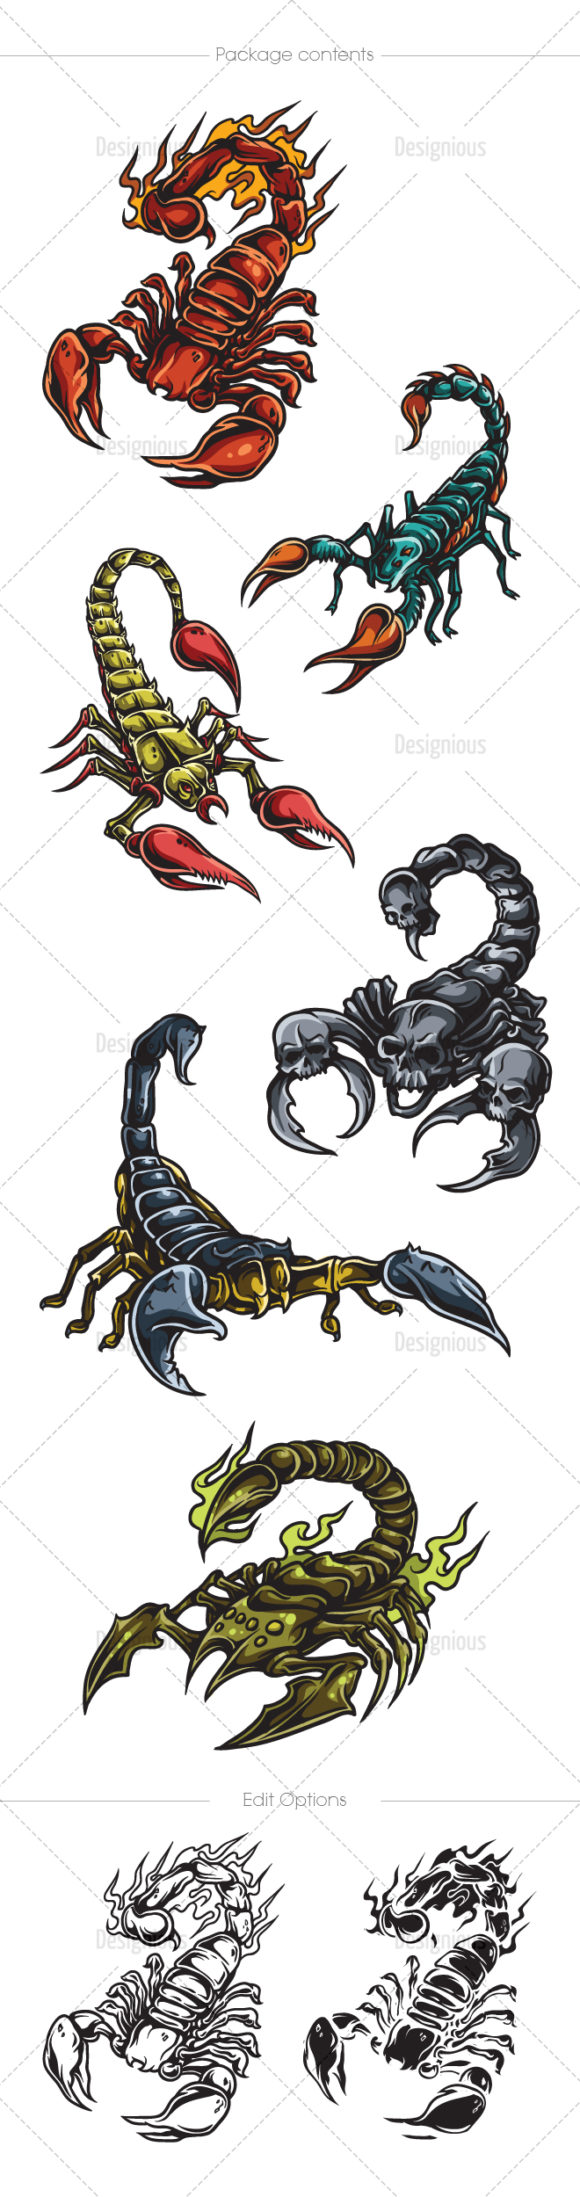 Scorpions Vector Pack 1 products designious vector scorpions 1 large